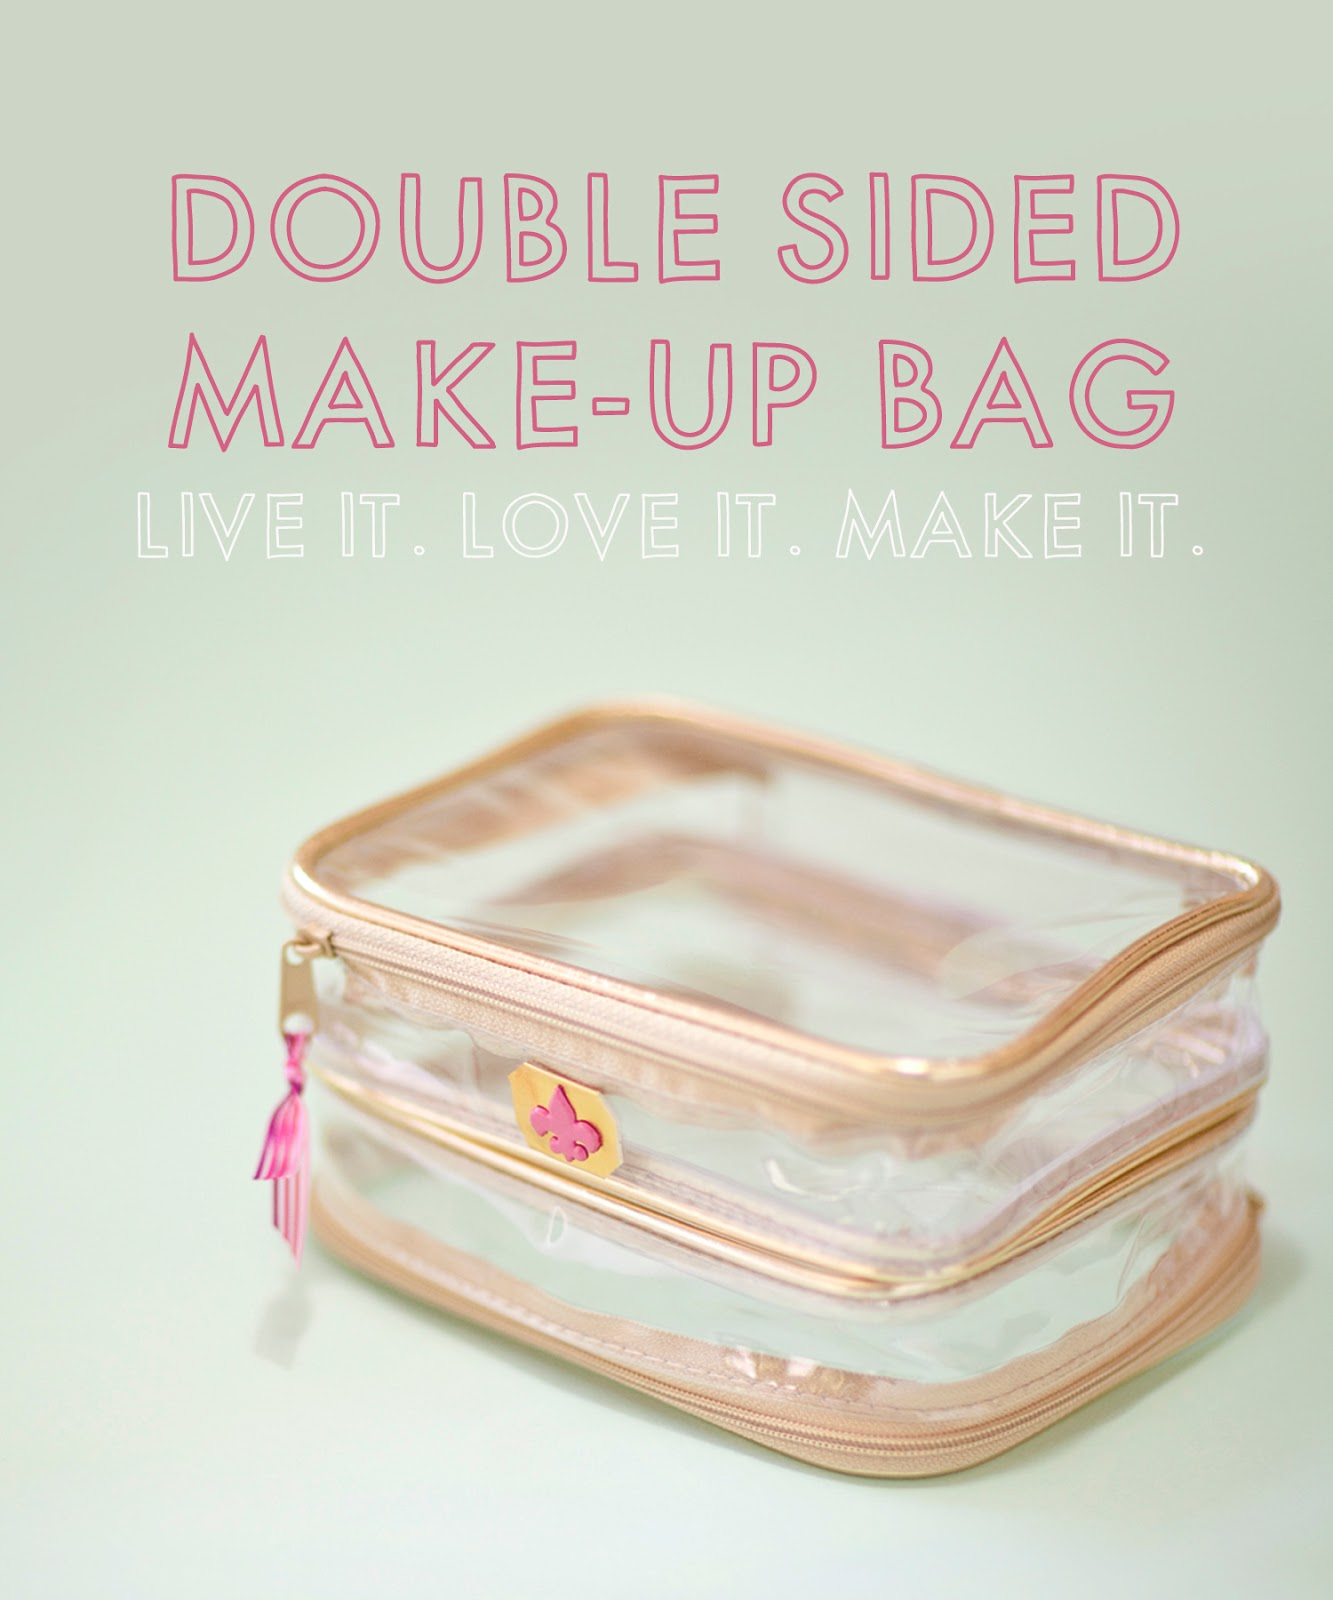 I Was Watching A You Video From The Beautiful Ingrid Miss Glamorazzi Few Months Ago And She Featured Really Handy Double Sided Travel Make Up Bag